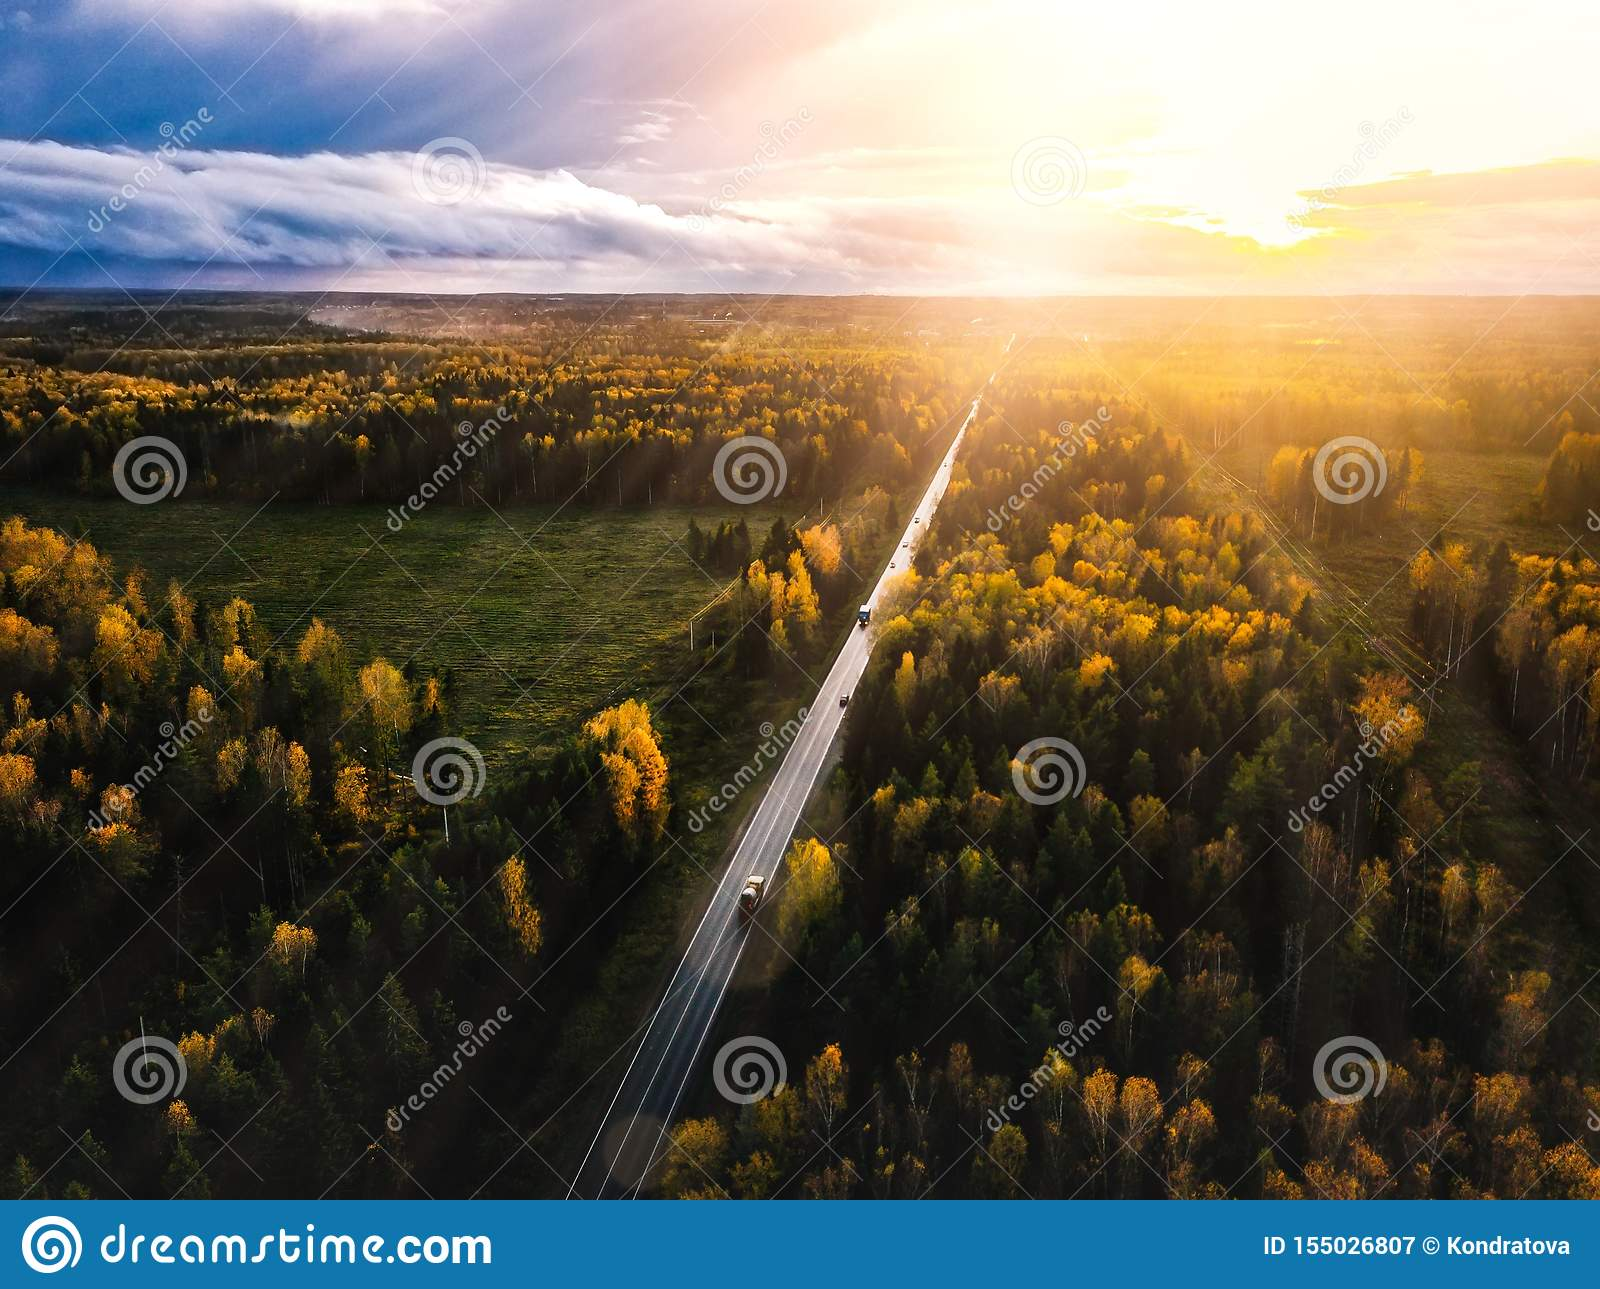 Aerial view of road in beautiful autumn forest at sunset in rural Finland